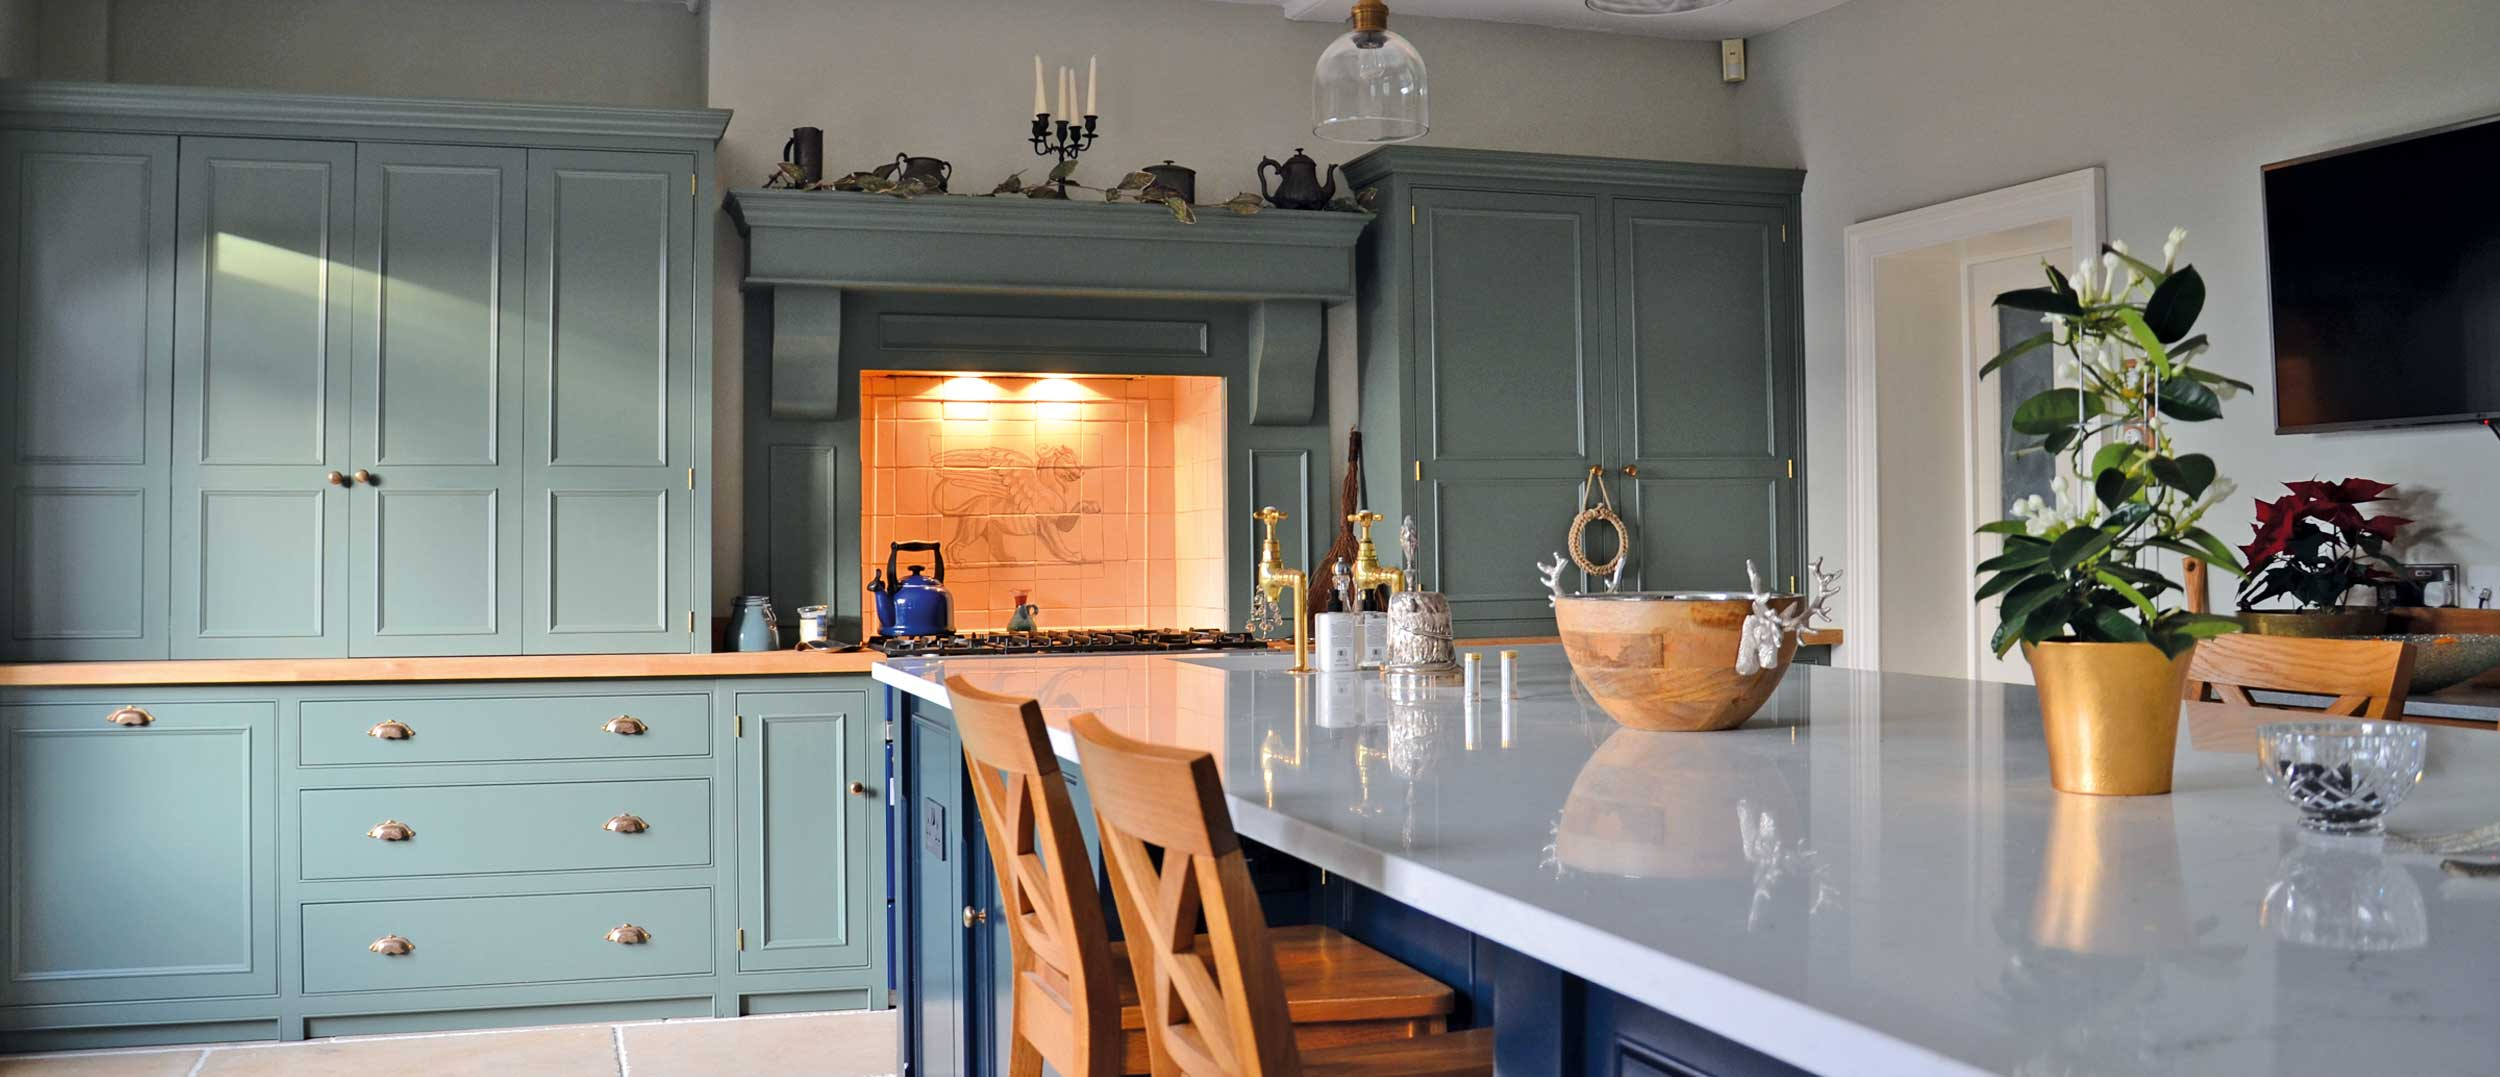 Bespoke Kitchens Hand Made With Solid Wood From The Bramble